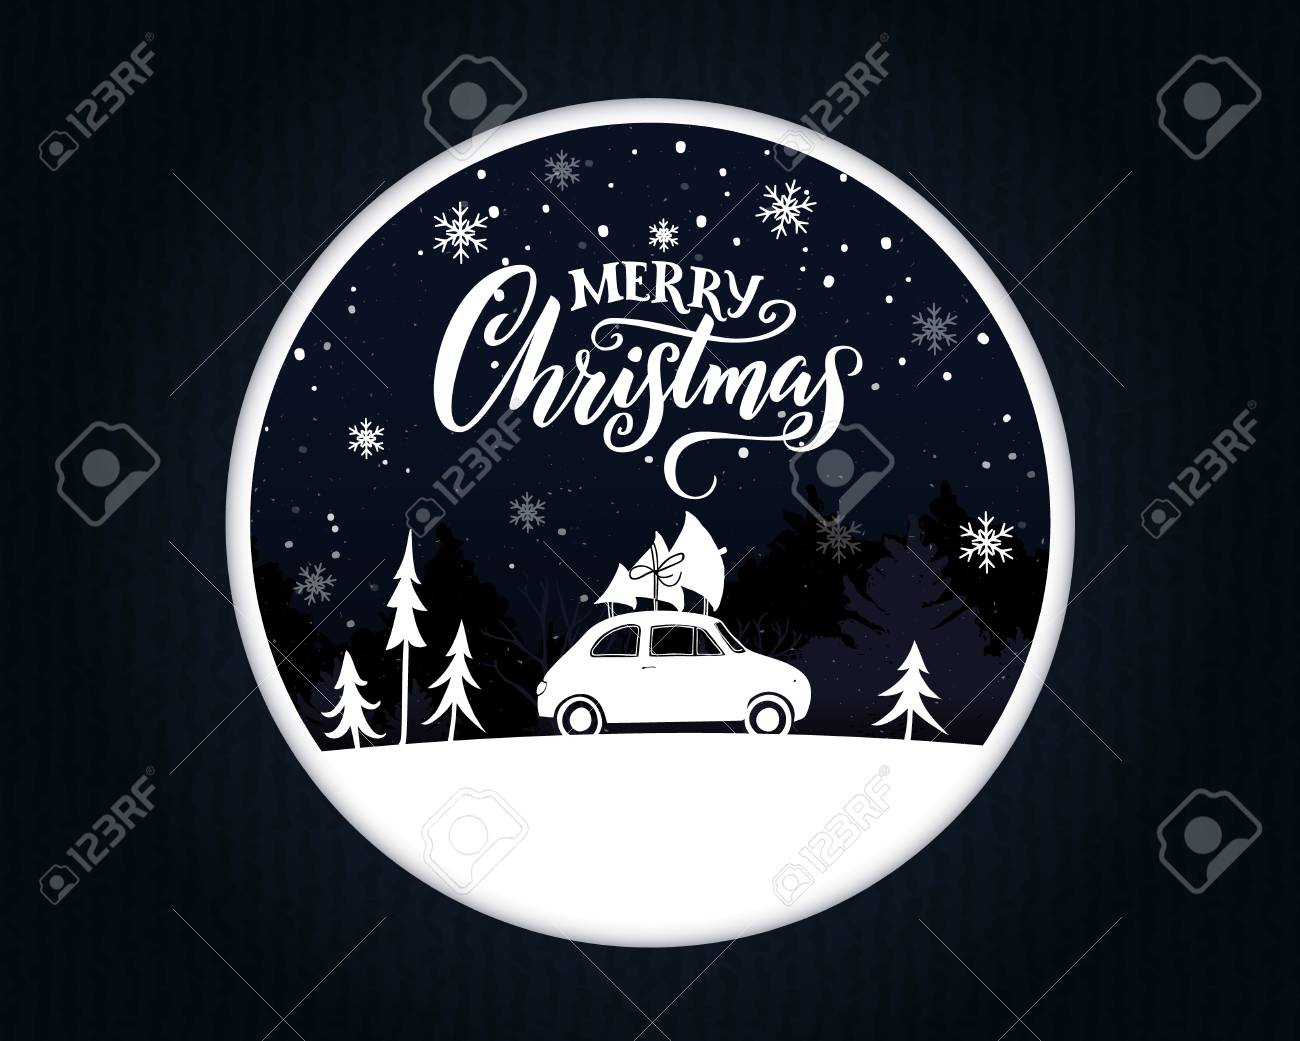 Papercut Christmas card with vintage car carrying a spruce on the top. Merry Christmas text on night scene. - 88462844